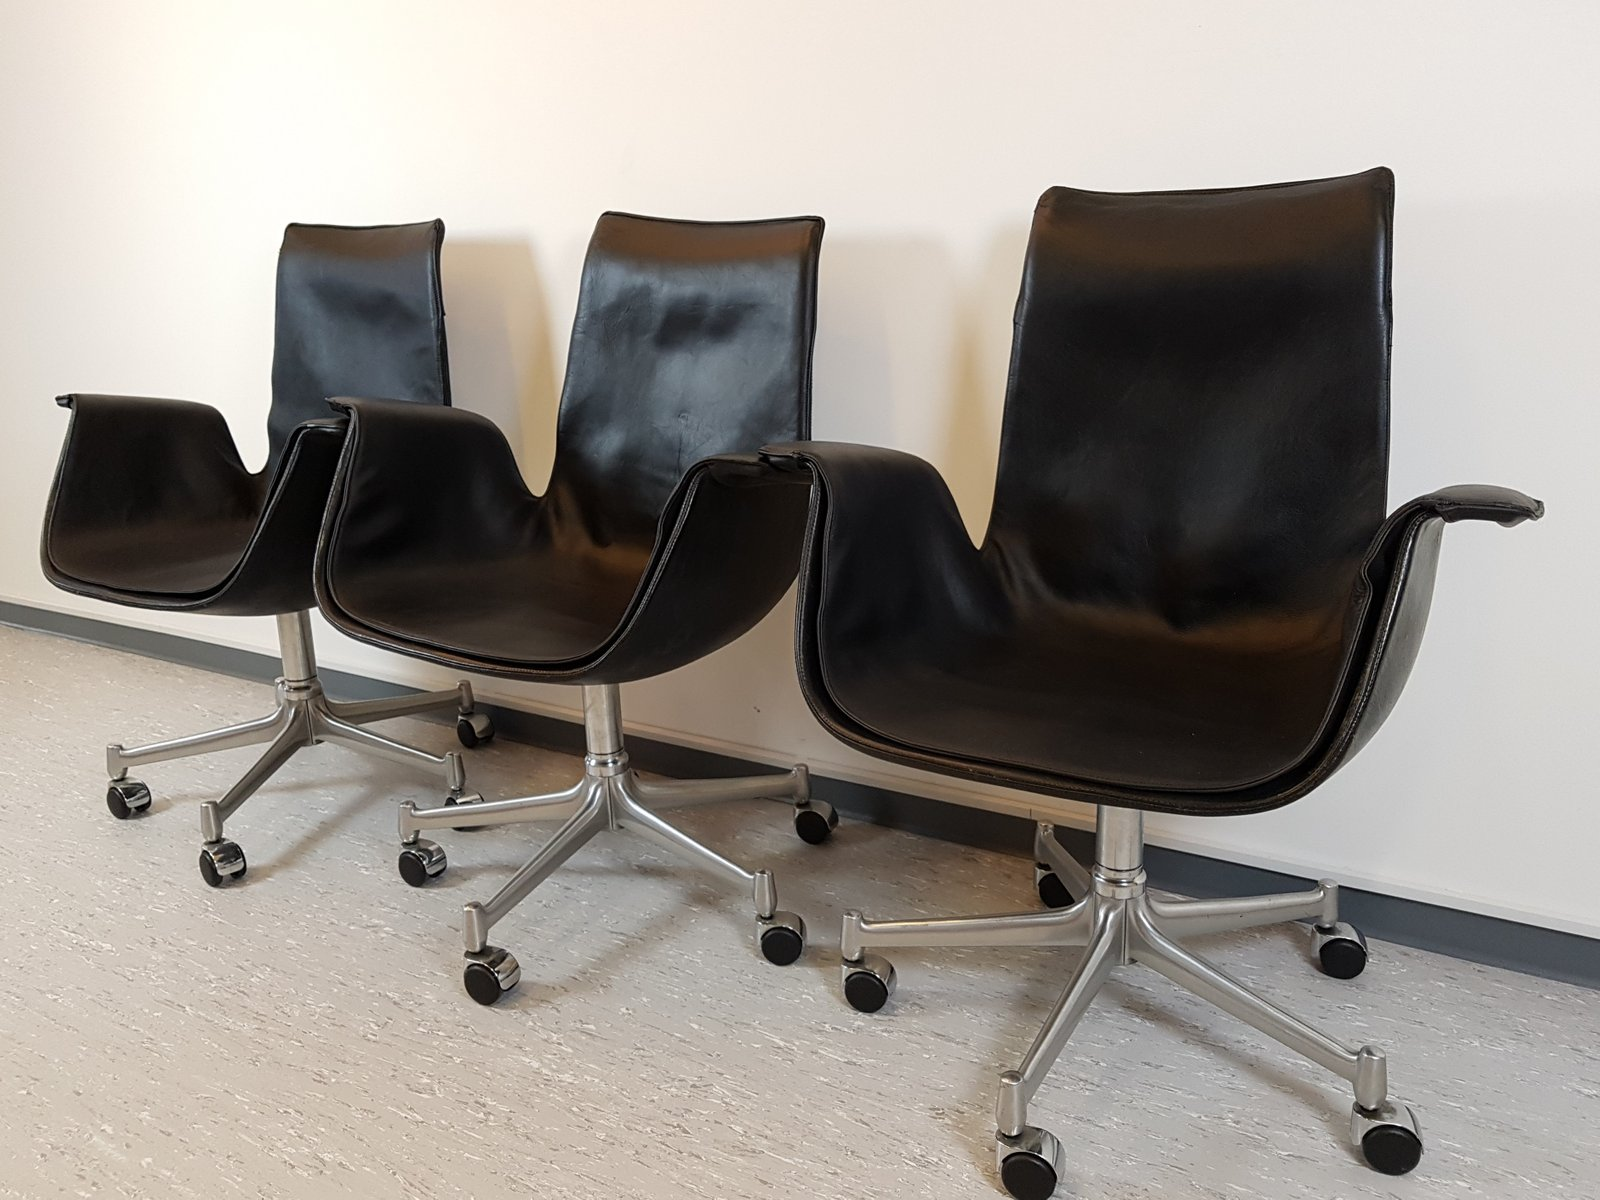 Tulip chair by preben fabricius j rgen kastholm for knoll 1950s for sale at pamono - Tulip chairs for sale ...